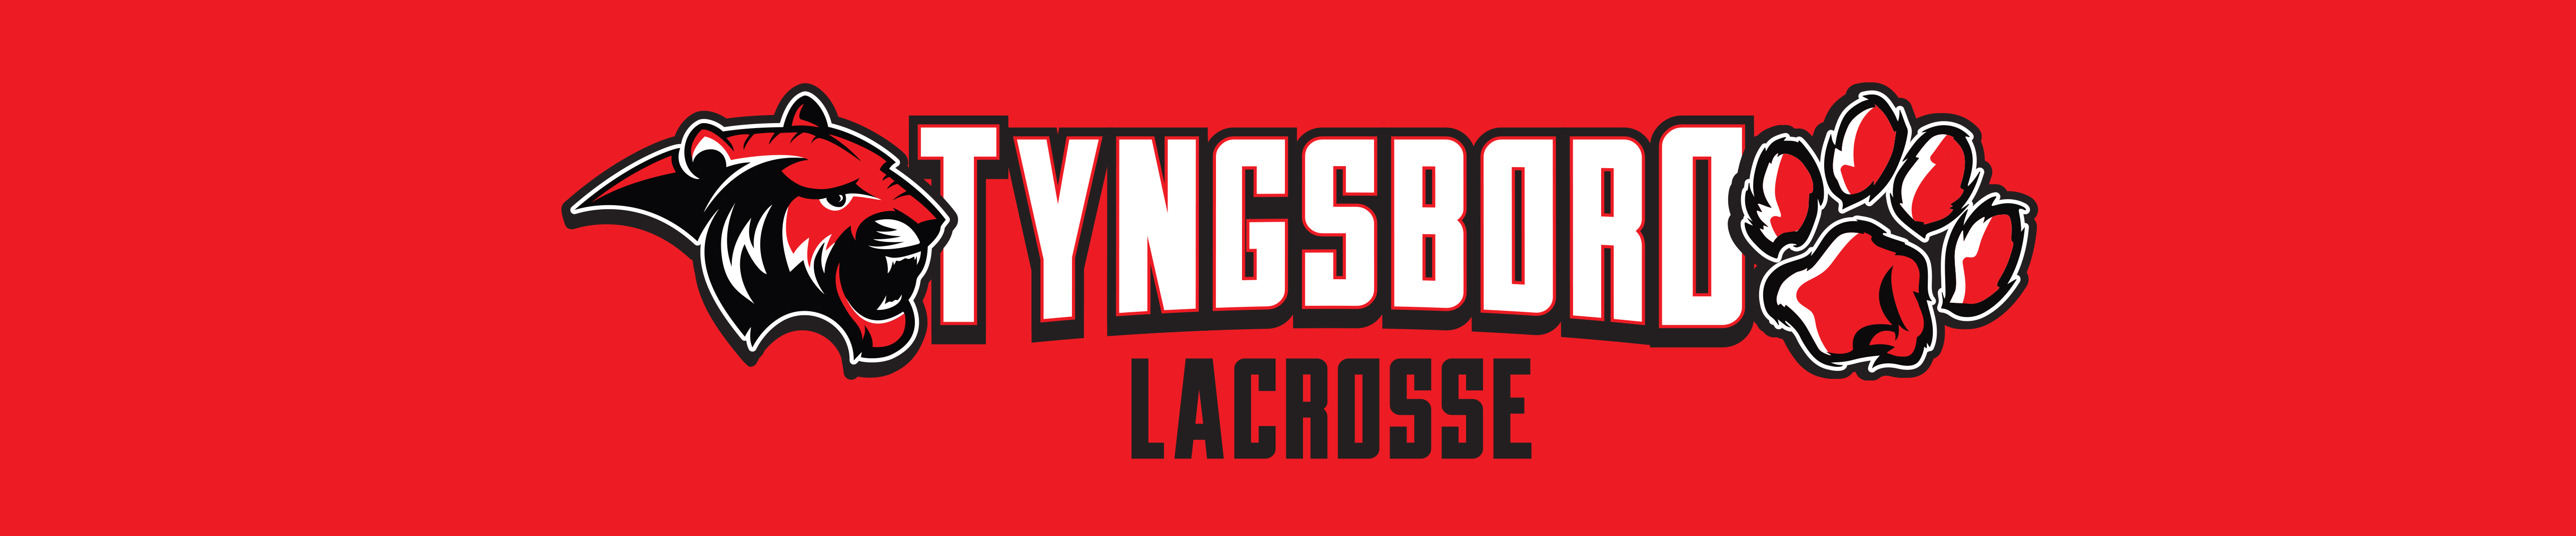 Tyngsboro Youth Lacrosse Association, Lacrosse, Goal, Field